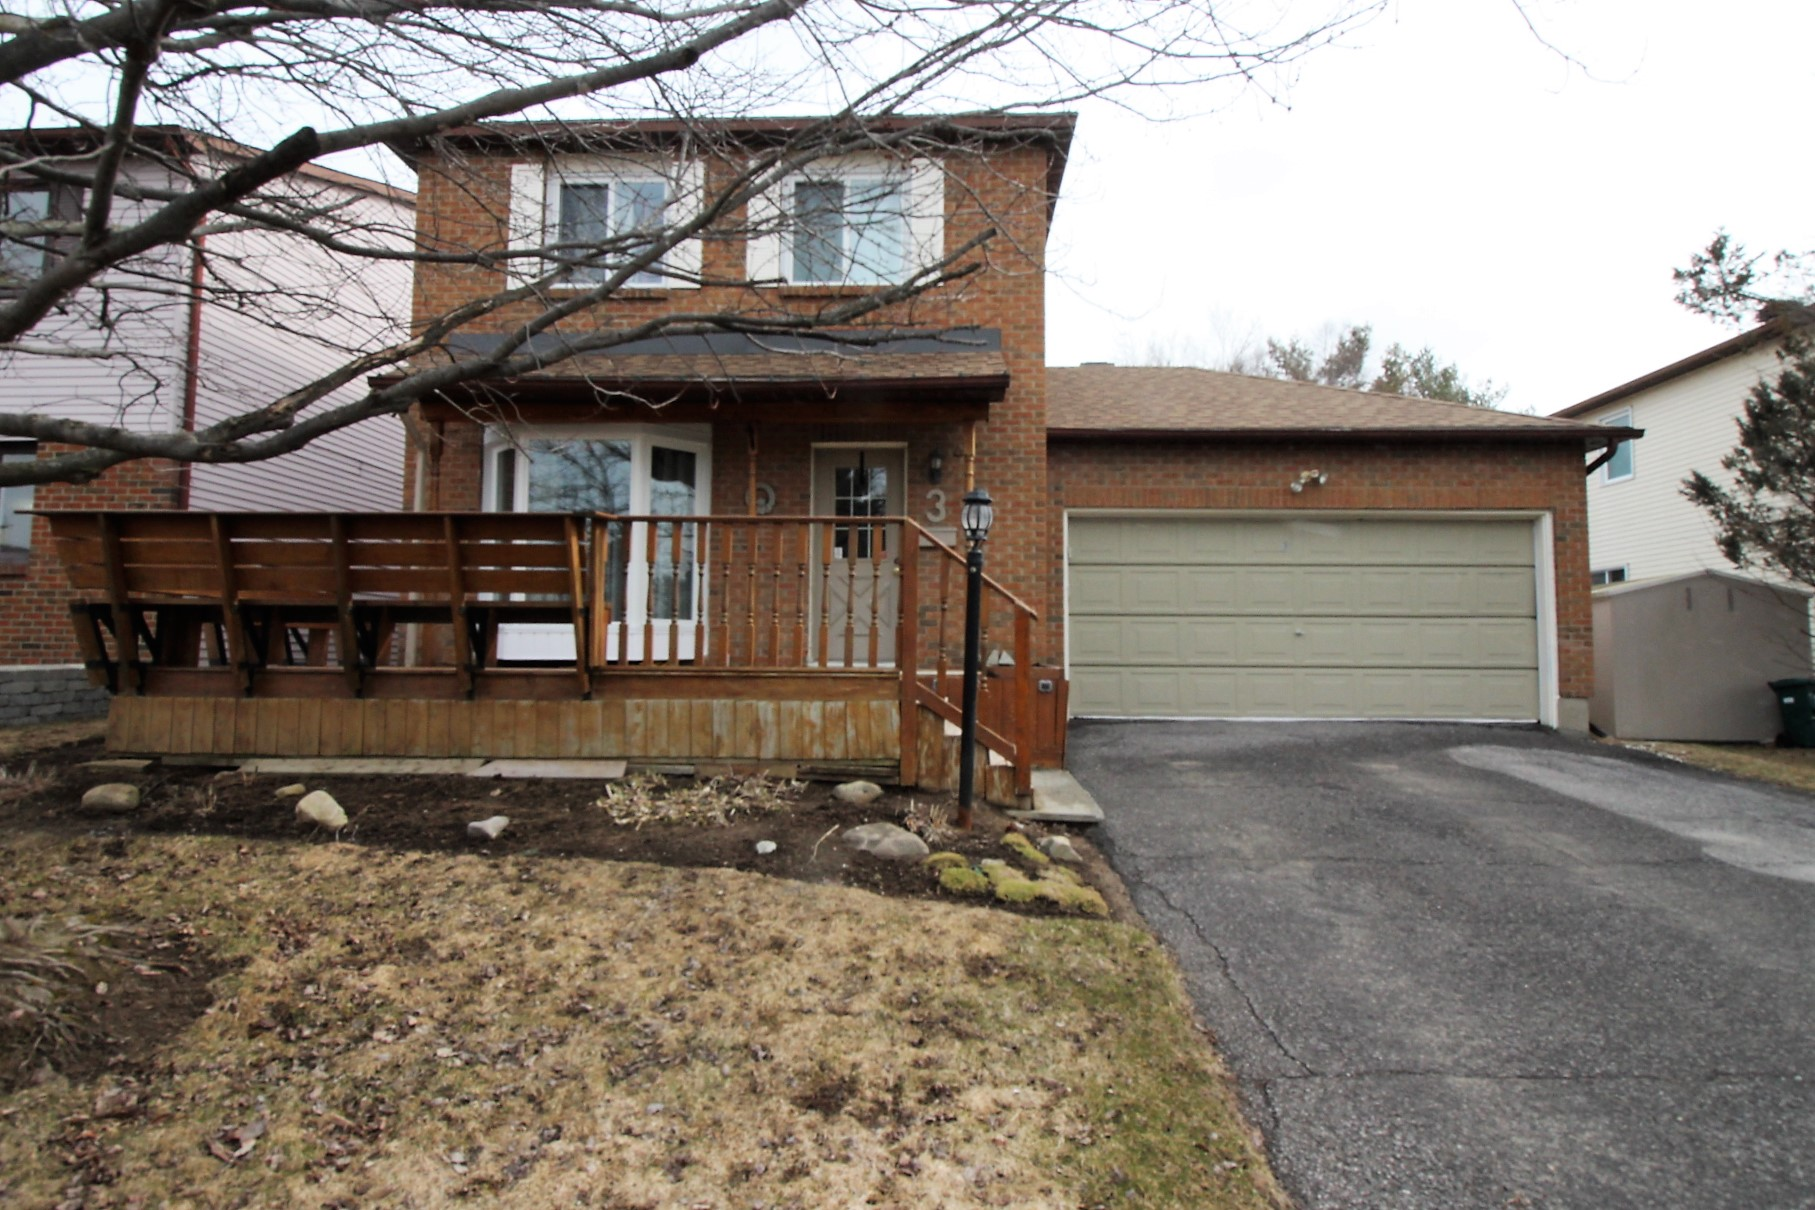 3 Airycot Circle - Well Maintained Detached Home with Finished Basement in Barrhaven!